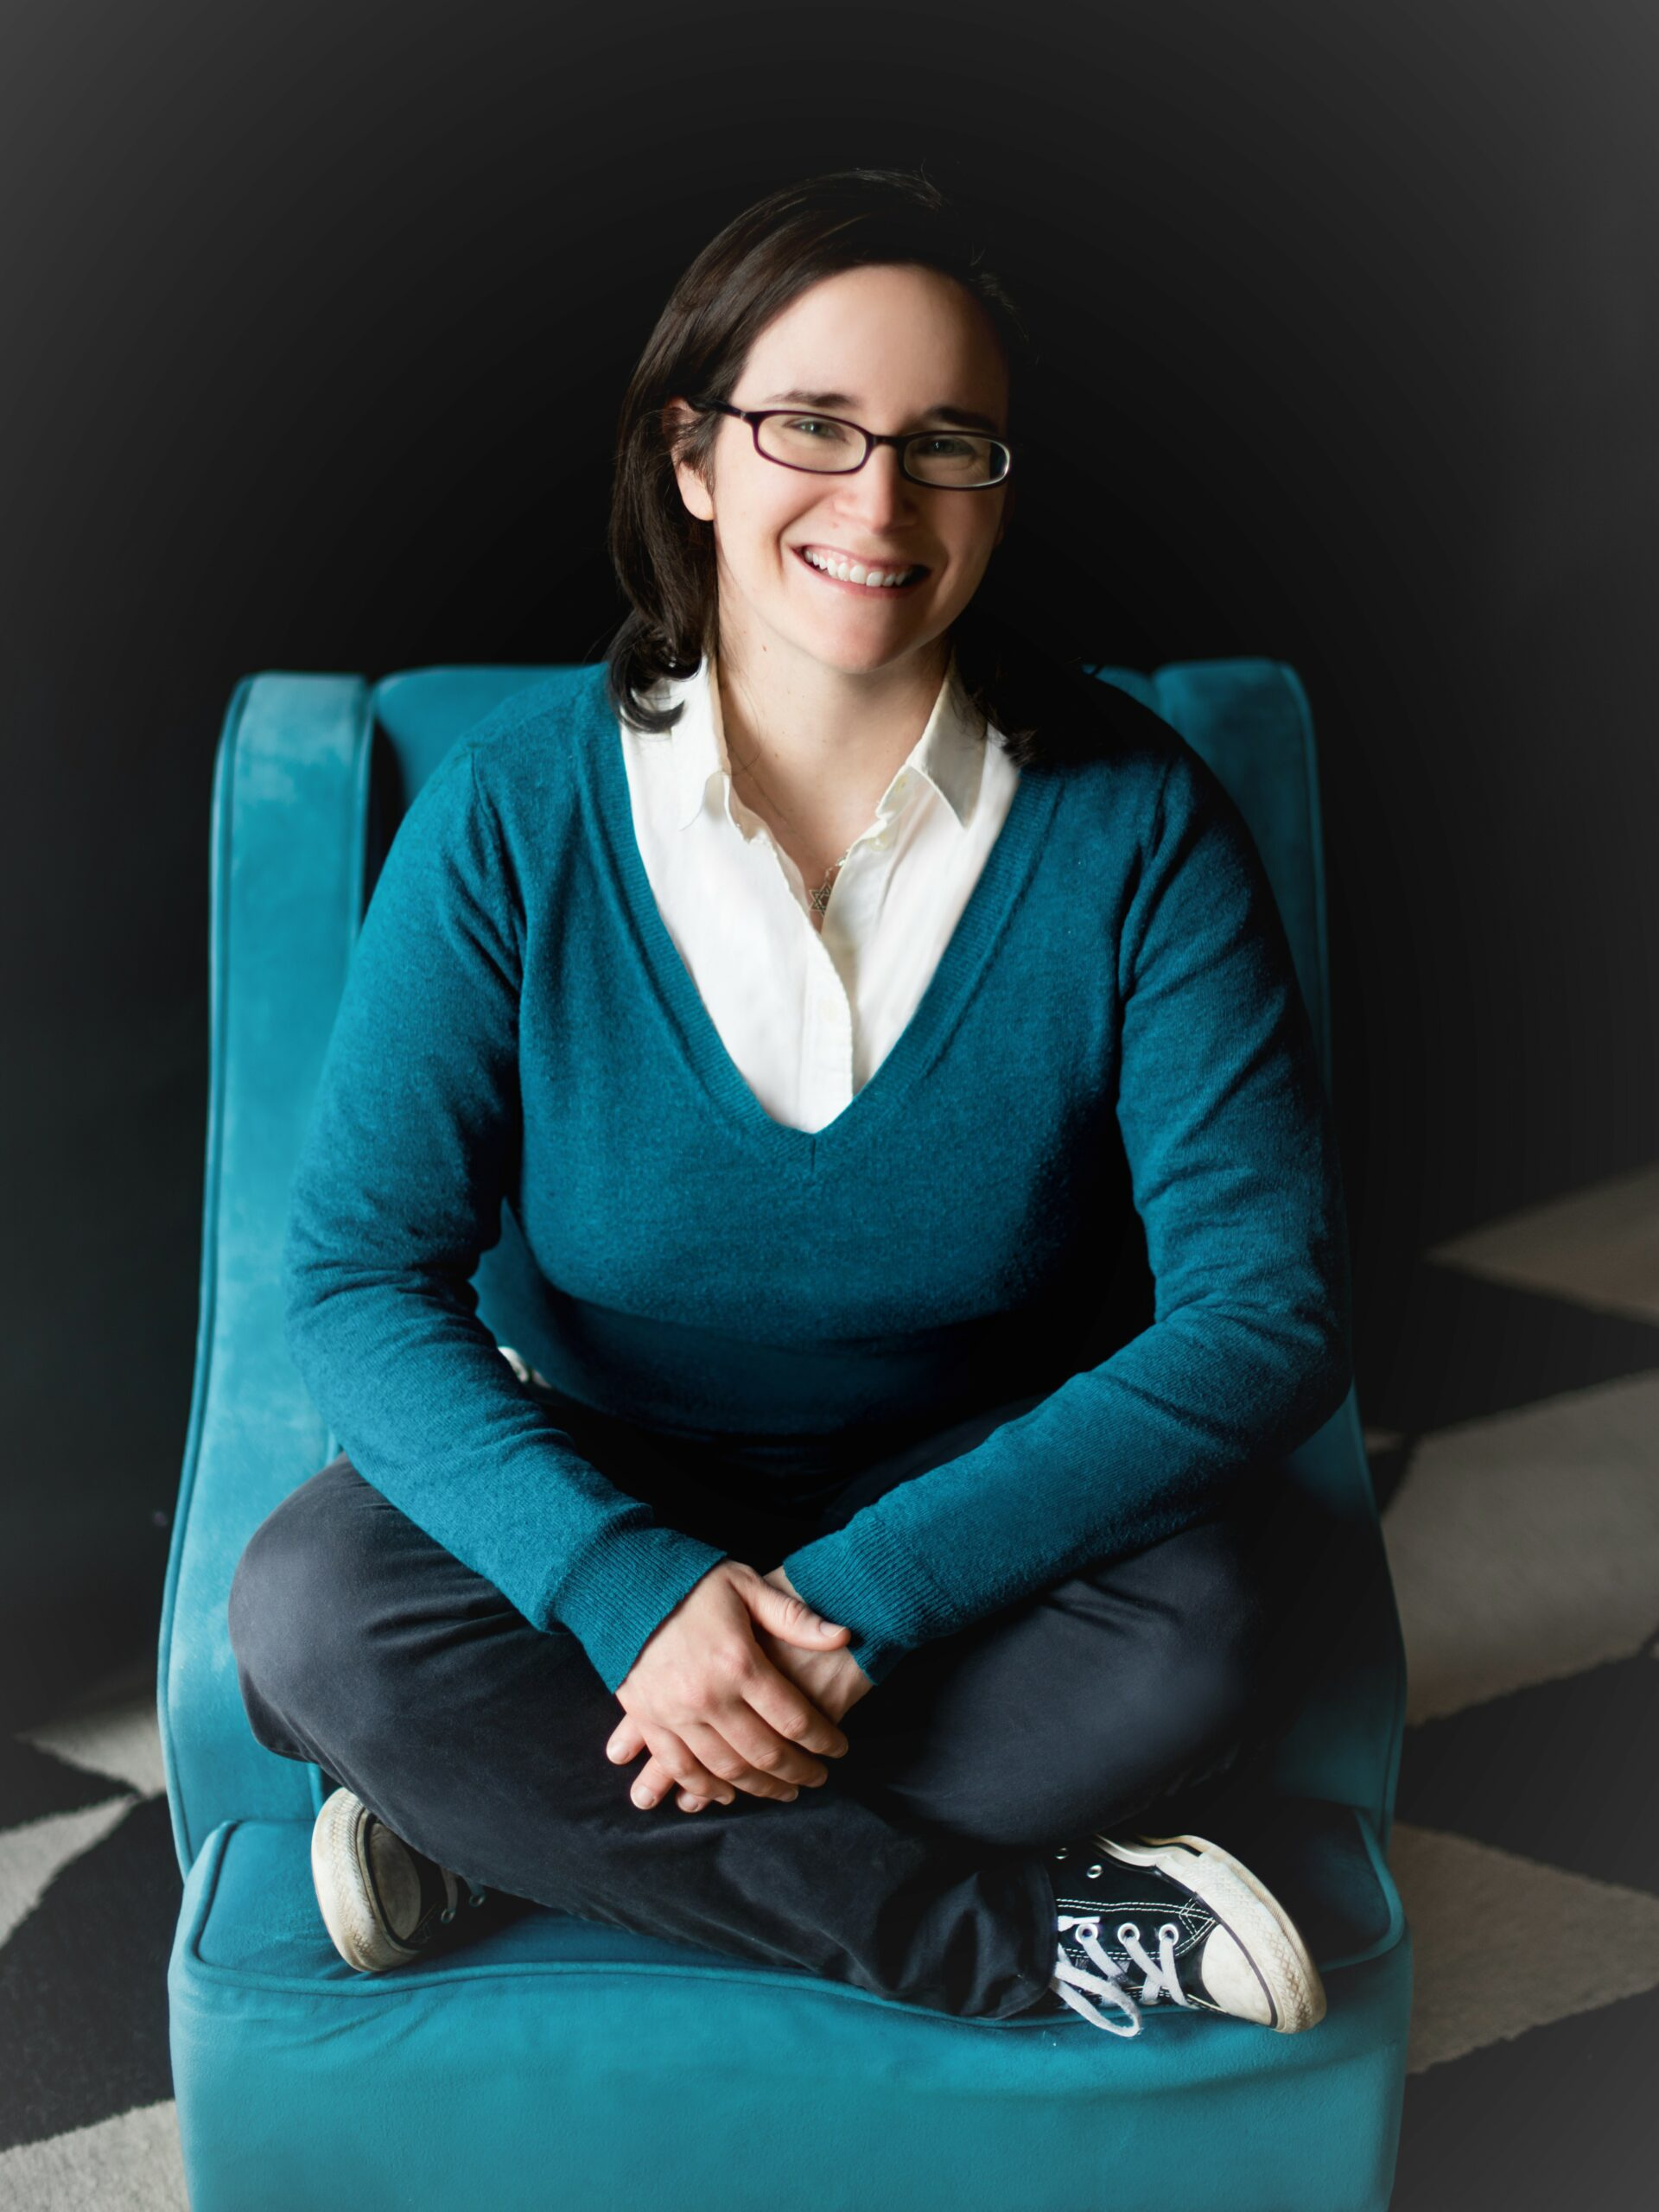 A smiling woman dressed in blue sitting cross-legged on a blue chair